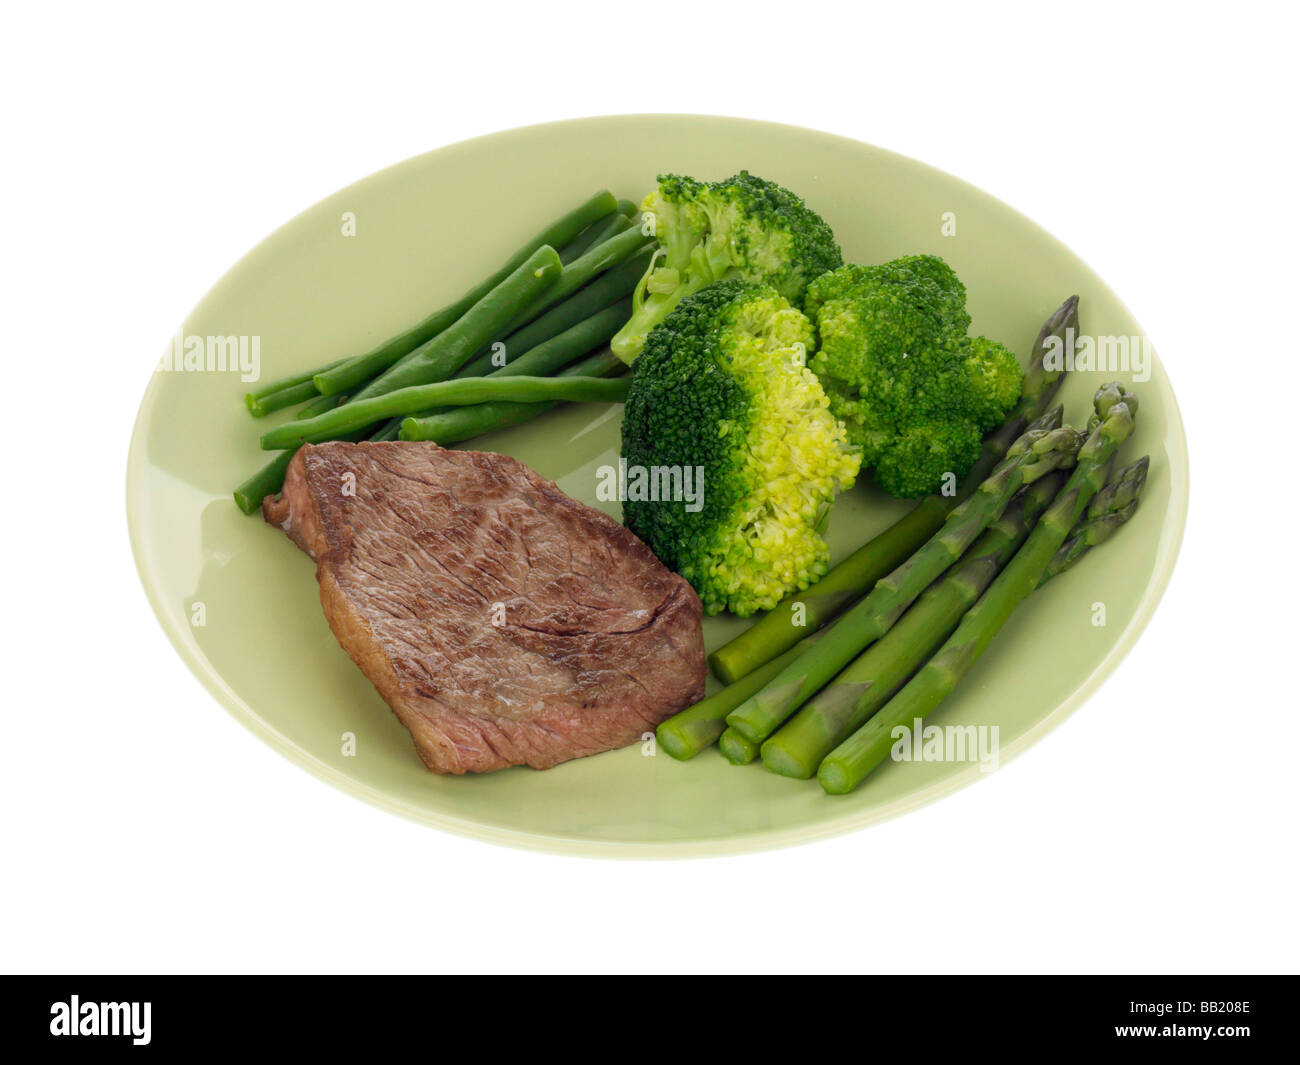 how to cook lean beef steak